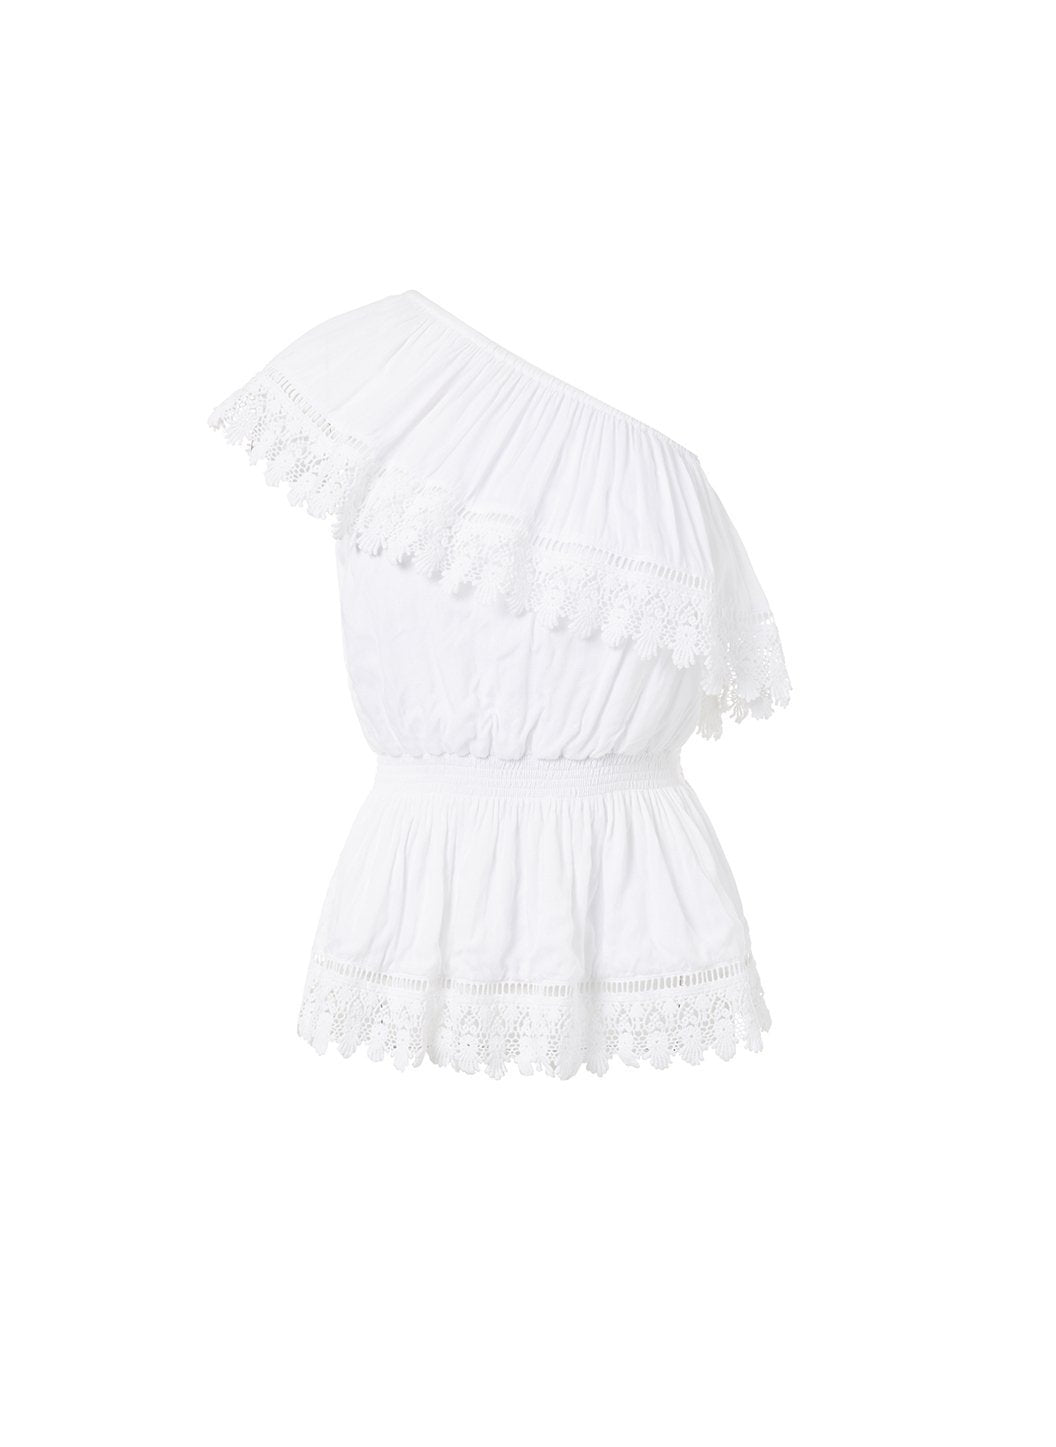 joanna white oneshoulder embroidered frill top 2019